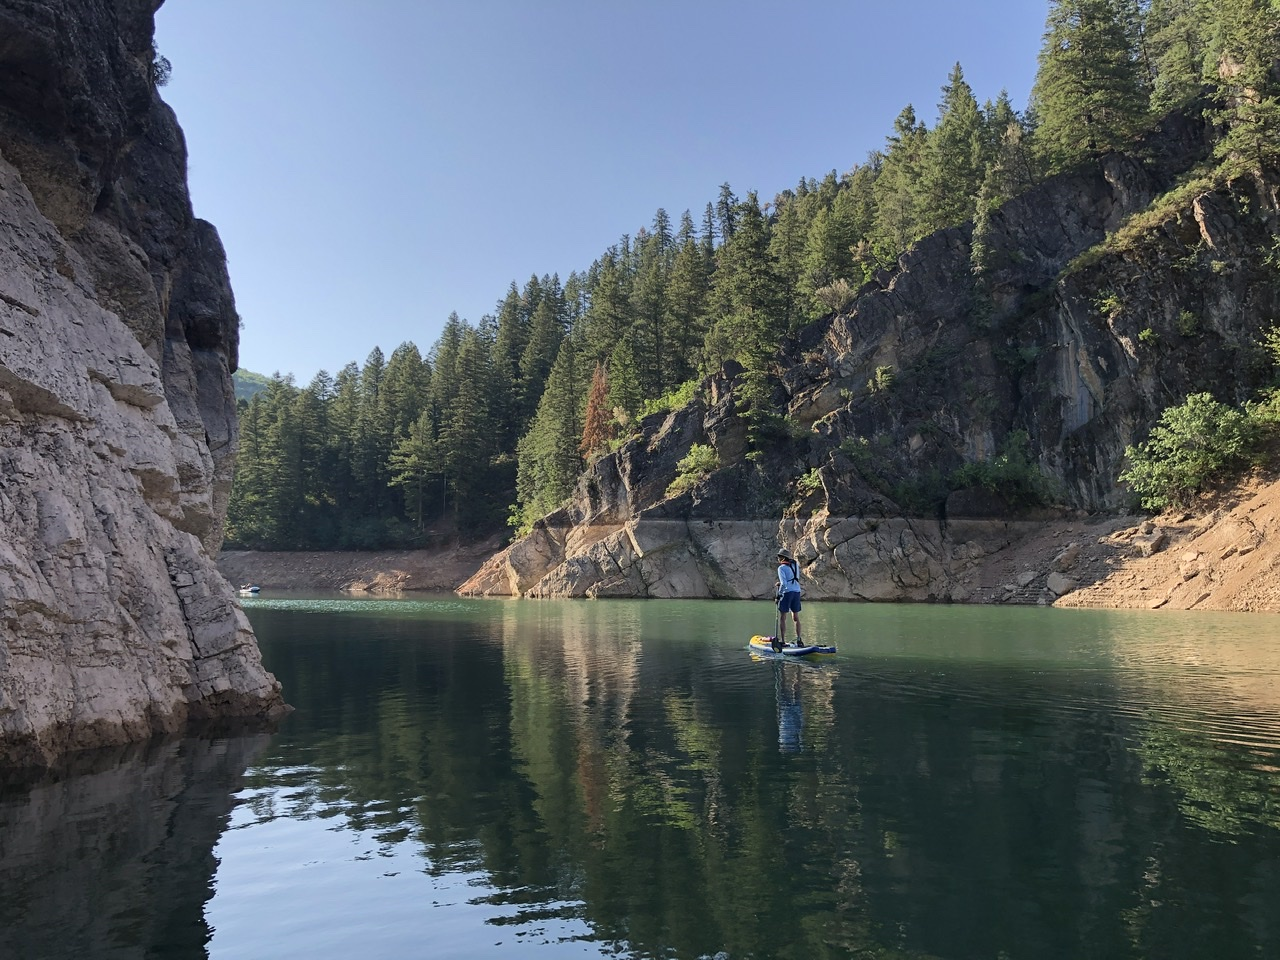 A man on a standing paddleboard, approaching a rocky turn in the water's path